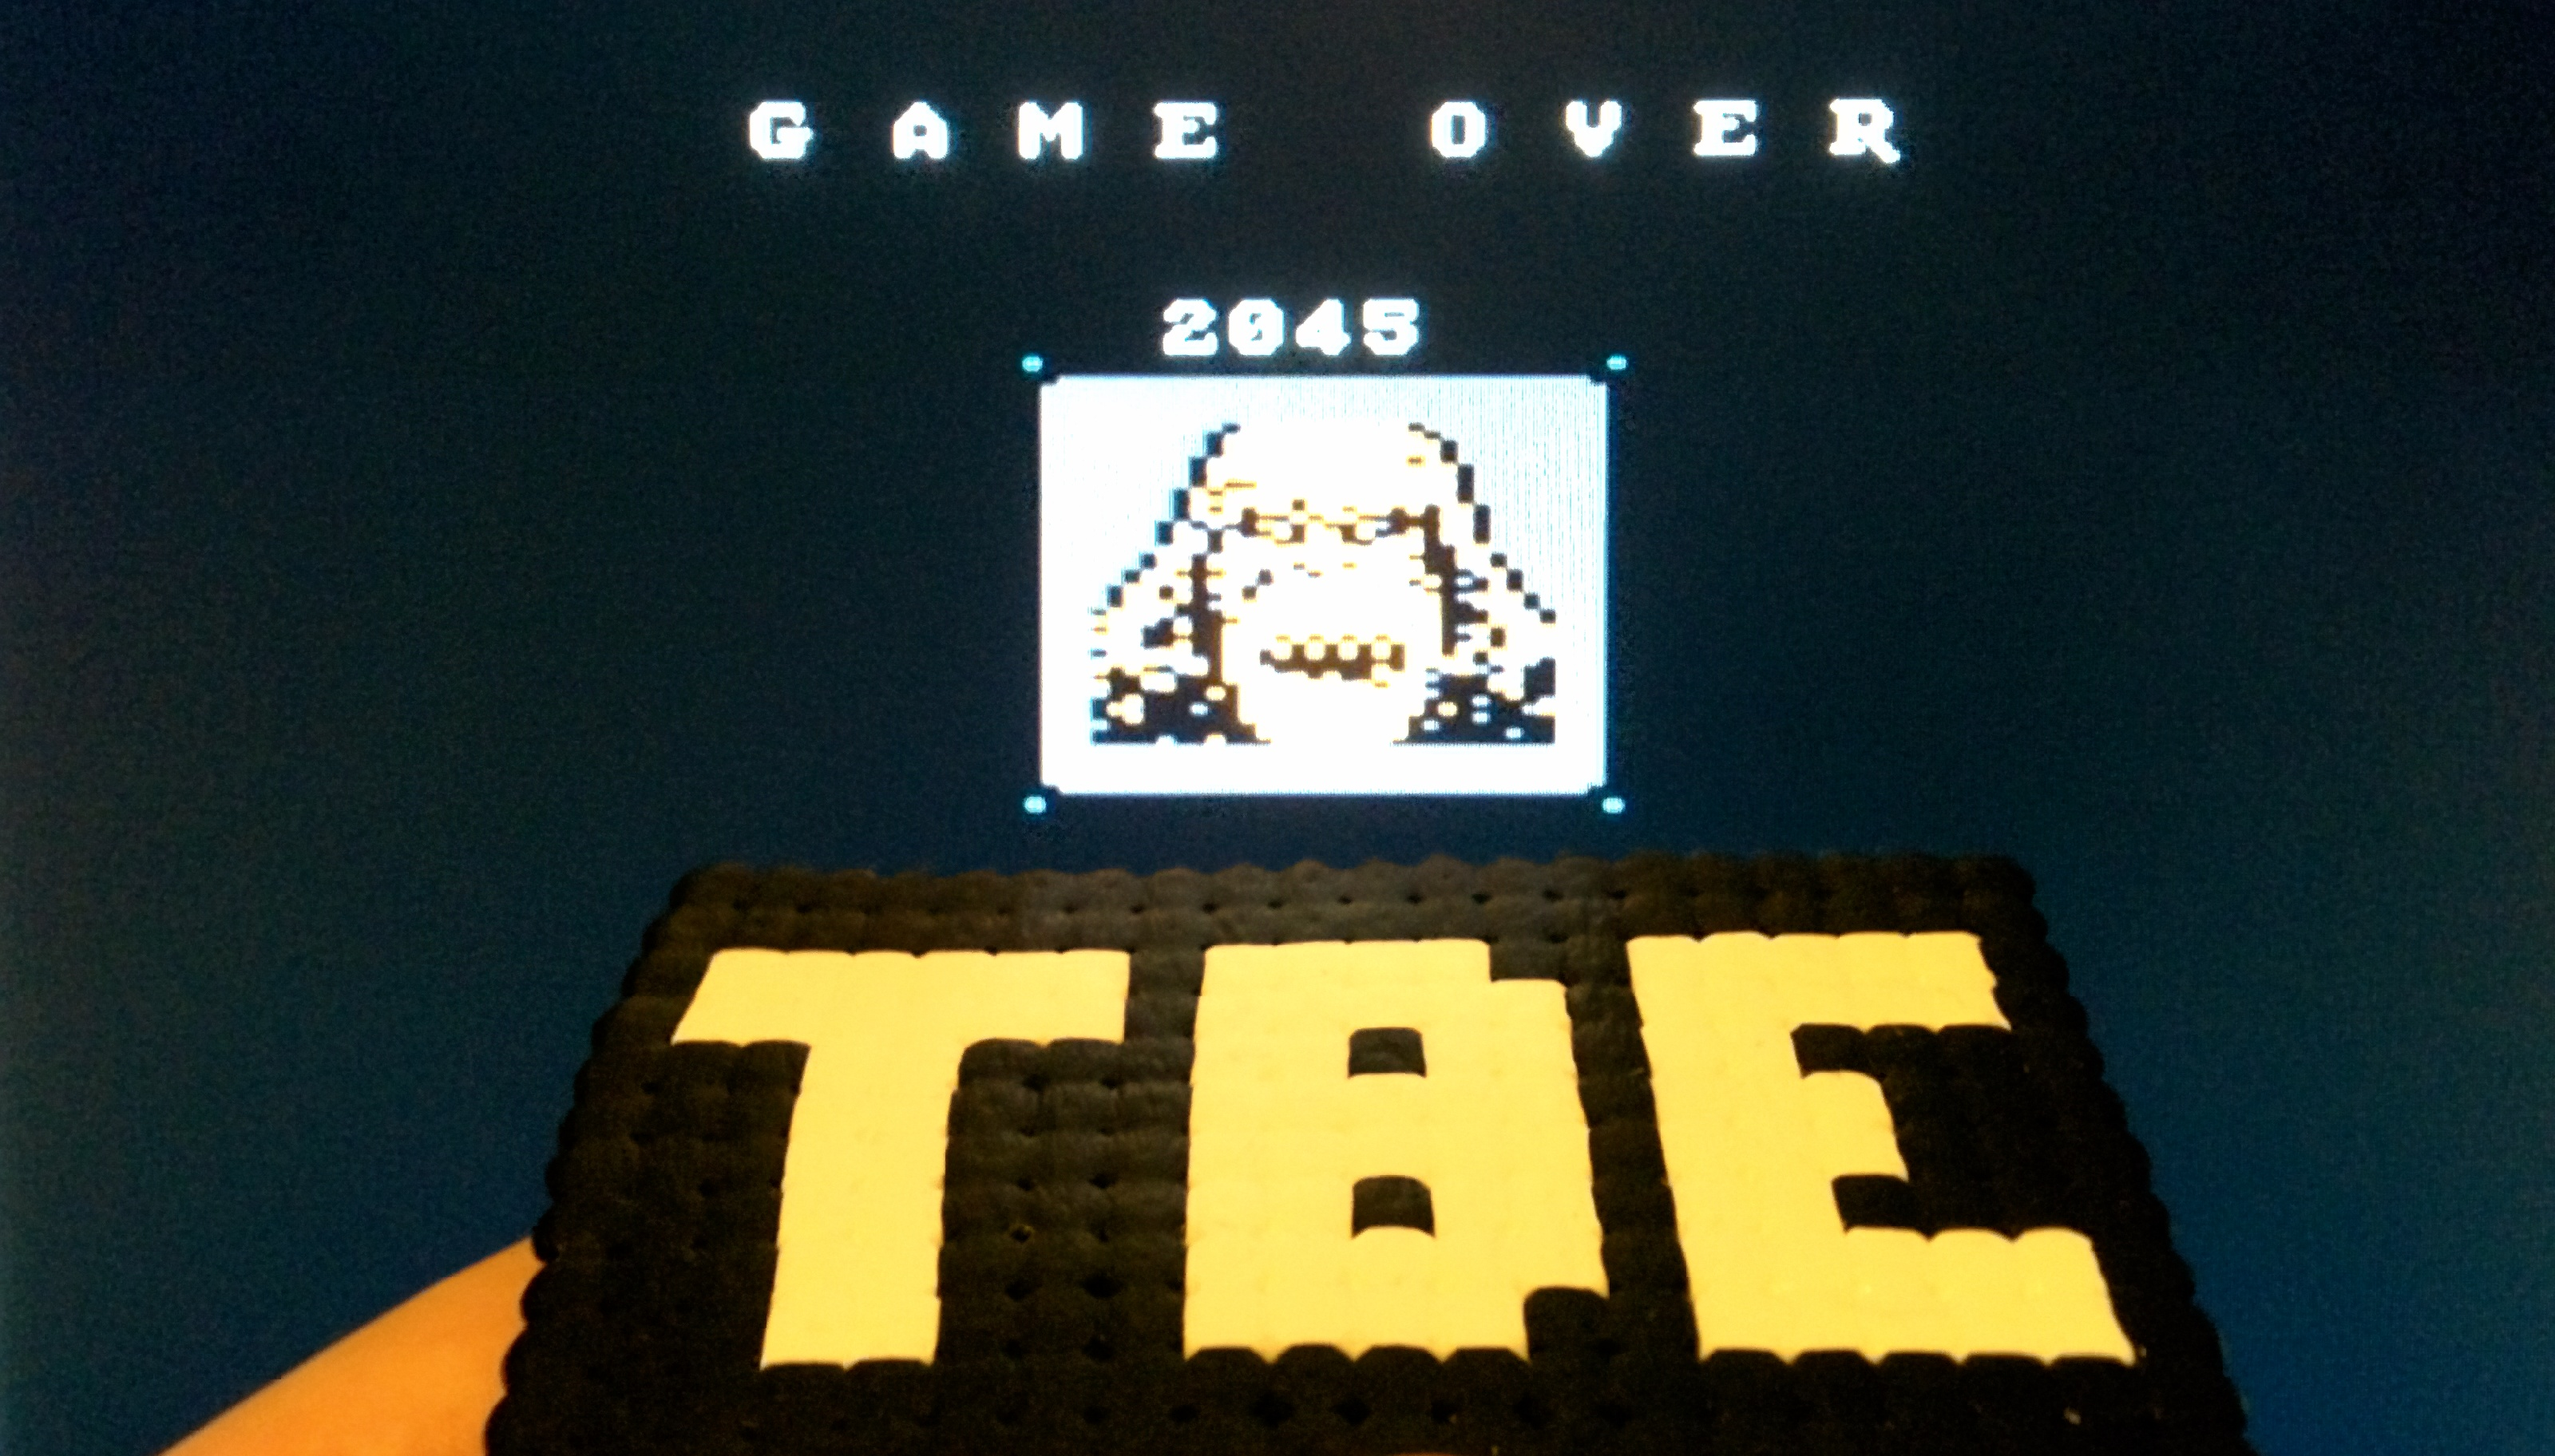 Sixx: Rampage (Atari 400/800/XL/XE Emulated) 2,045 points on 2014-10-28 14:08:42